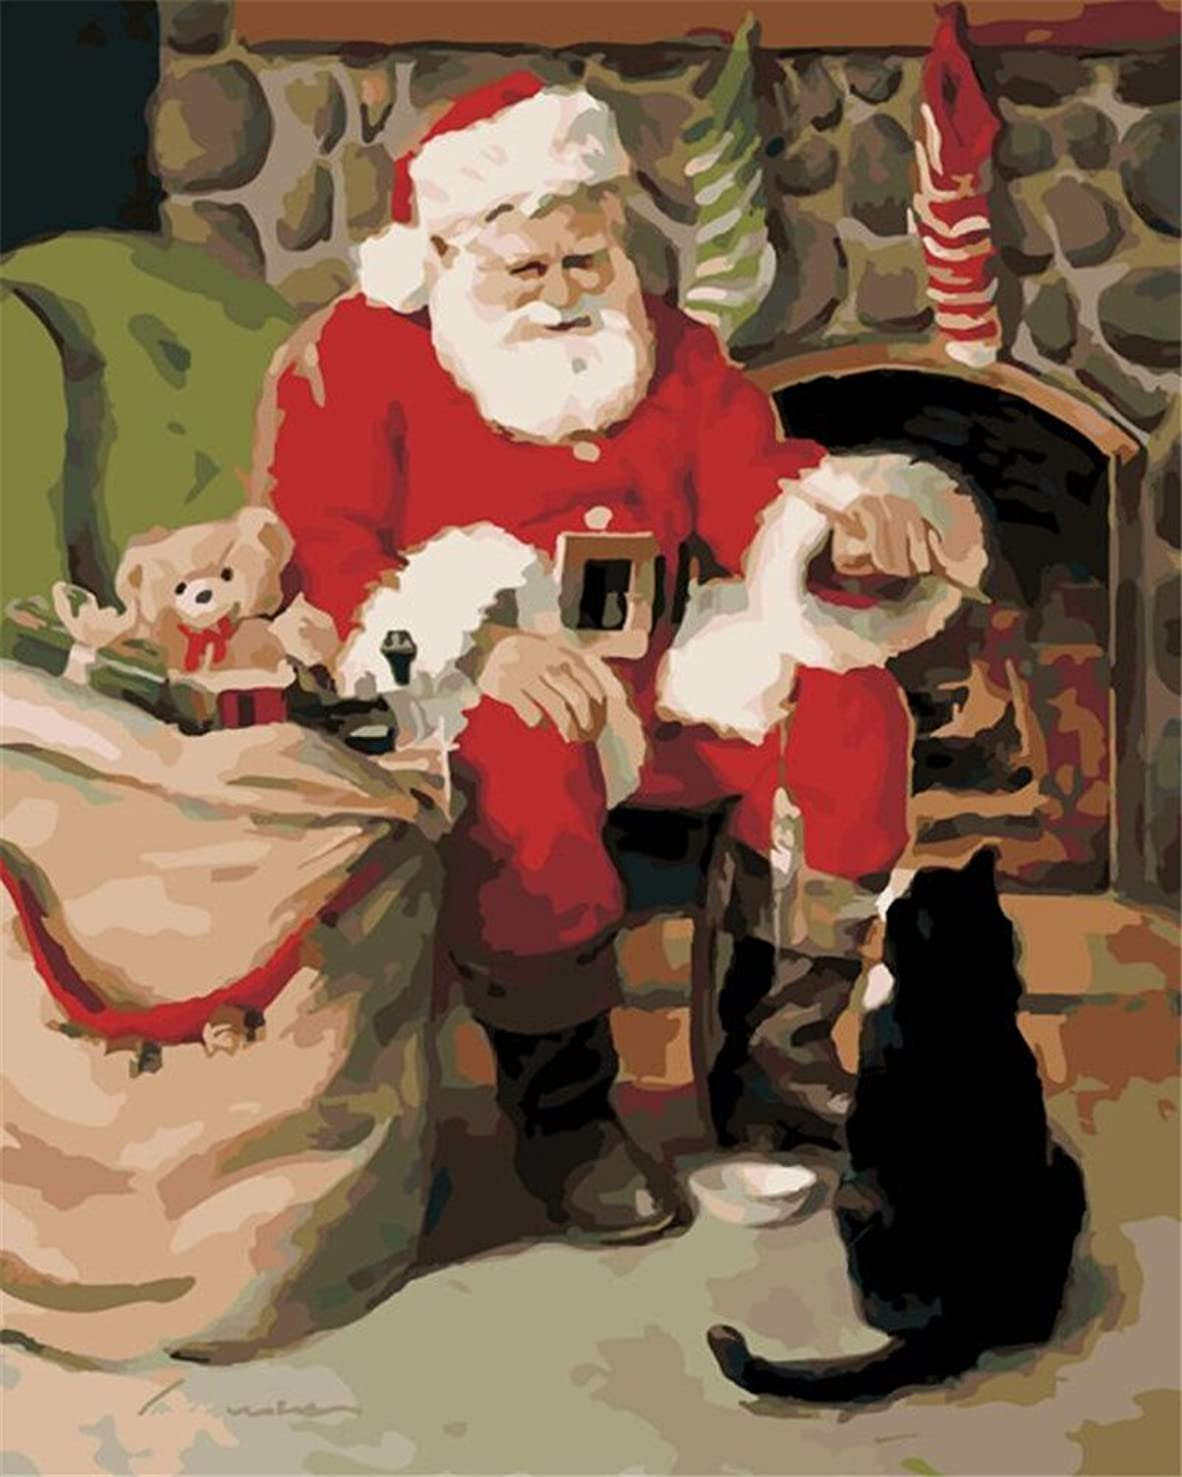 DIY Oil Painting Paint by Number Kit for Kids Adults Beginner 16x20 inch - Santa Claus and Cat, Drawing with Brushes Christmas Decor Decorations Gifts (Frame)